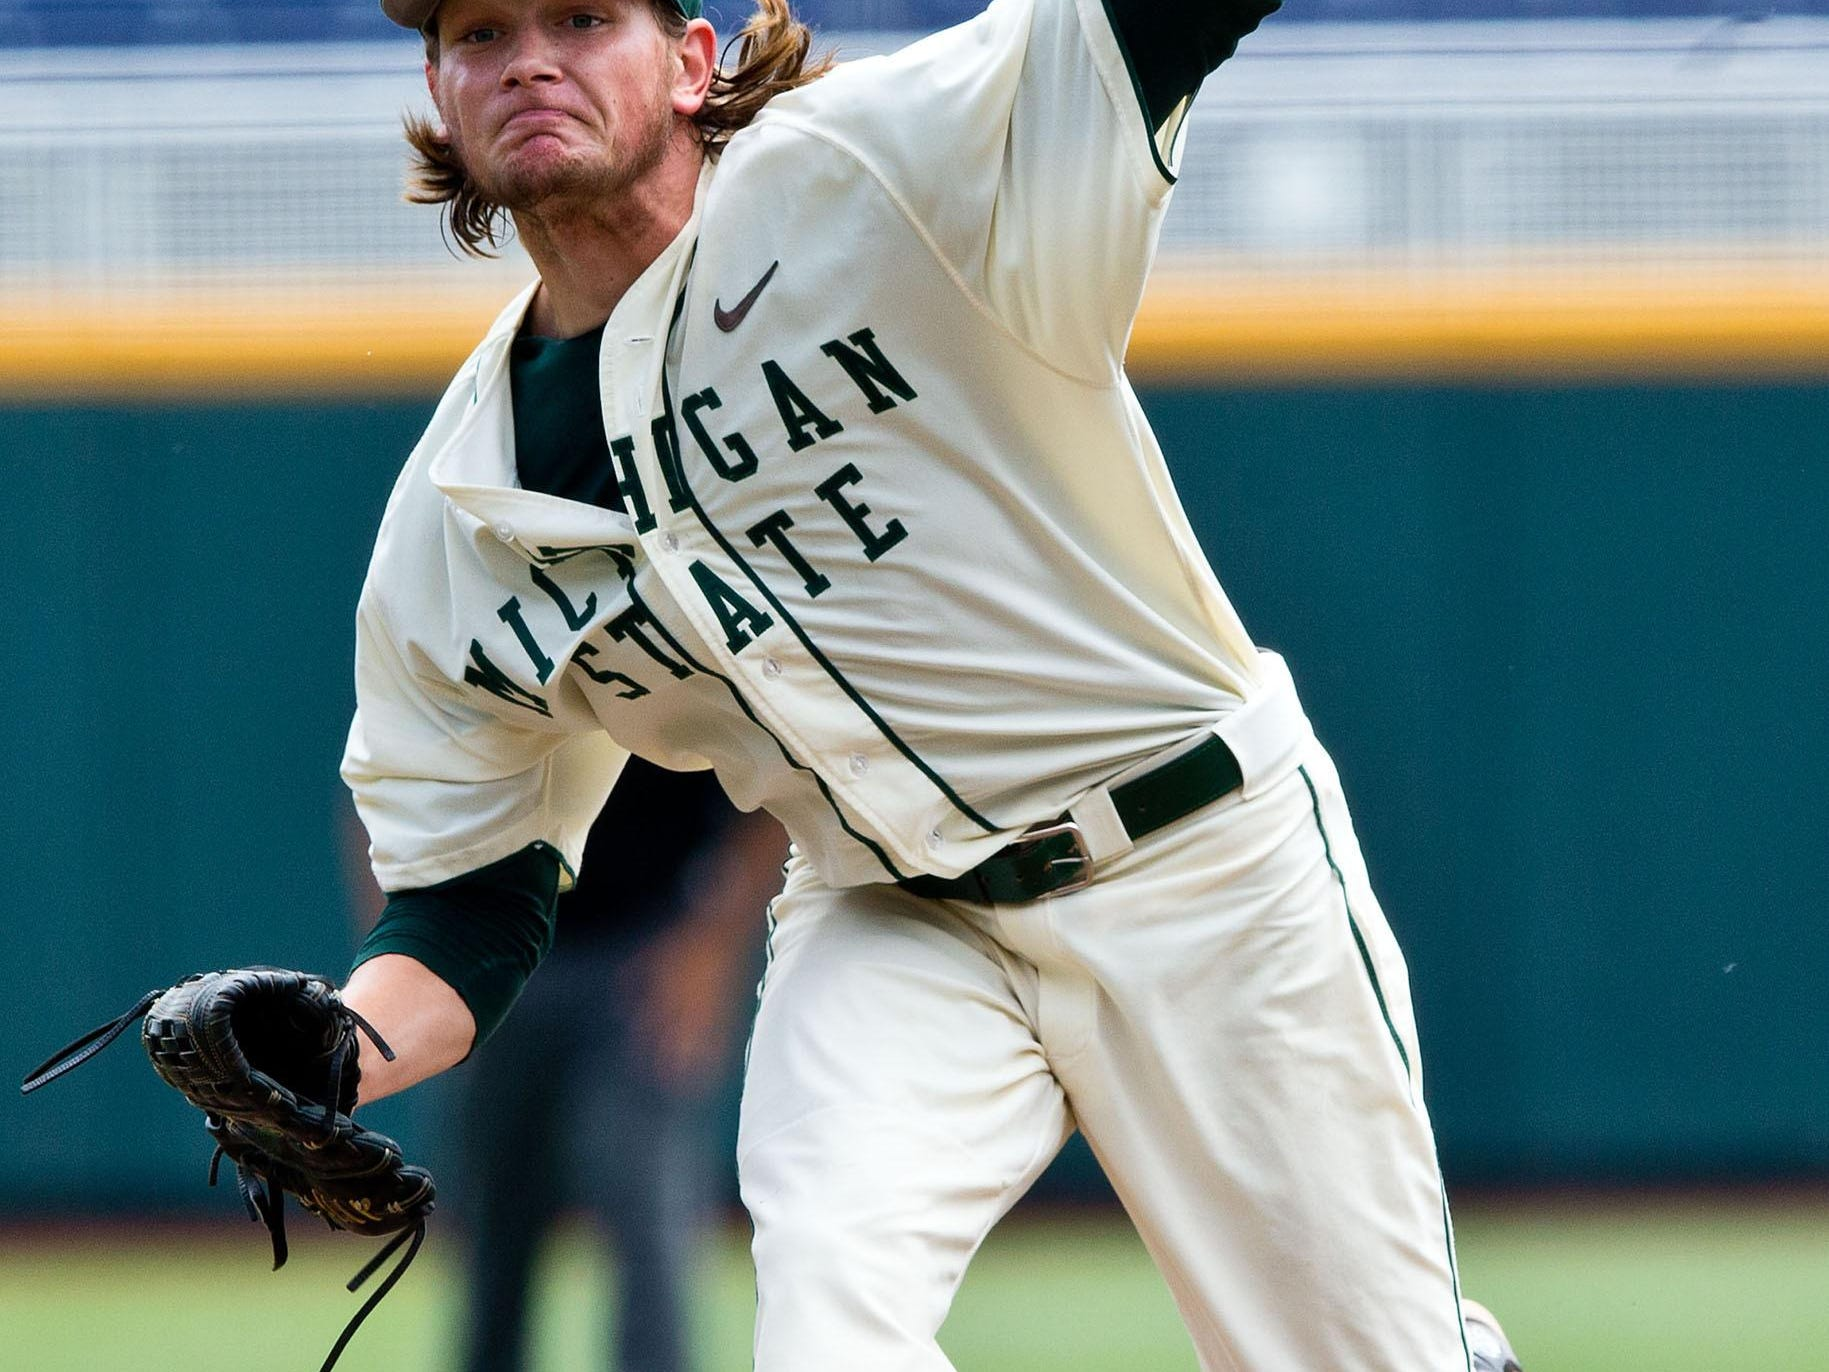 MSU junior pitcher Anthony Misiewicz was taken by the Seattle Mariners in the 18th round of the MLB draft on Wednesday. The 6-foot-1, 187-pound left-hander went 5-4 with a 3.80 ERA and 58 strikeouts in 68 2/3 innings this spring for the Spartans. Baseball America ranked Misiewicz as the 14th-best player in the state going into the draft after he split time between the Spartans' starting rotation and bullpen, with eight starts among his 18 appearances this season.